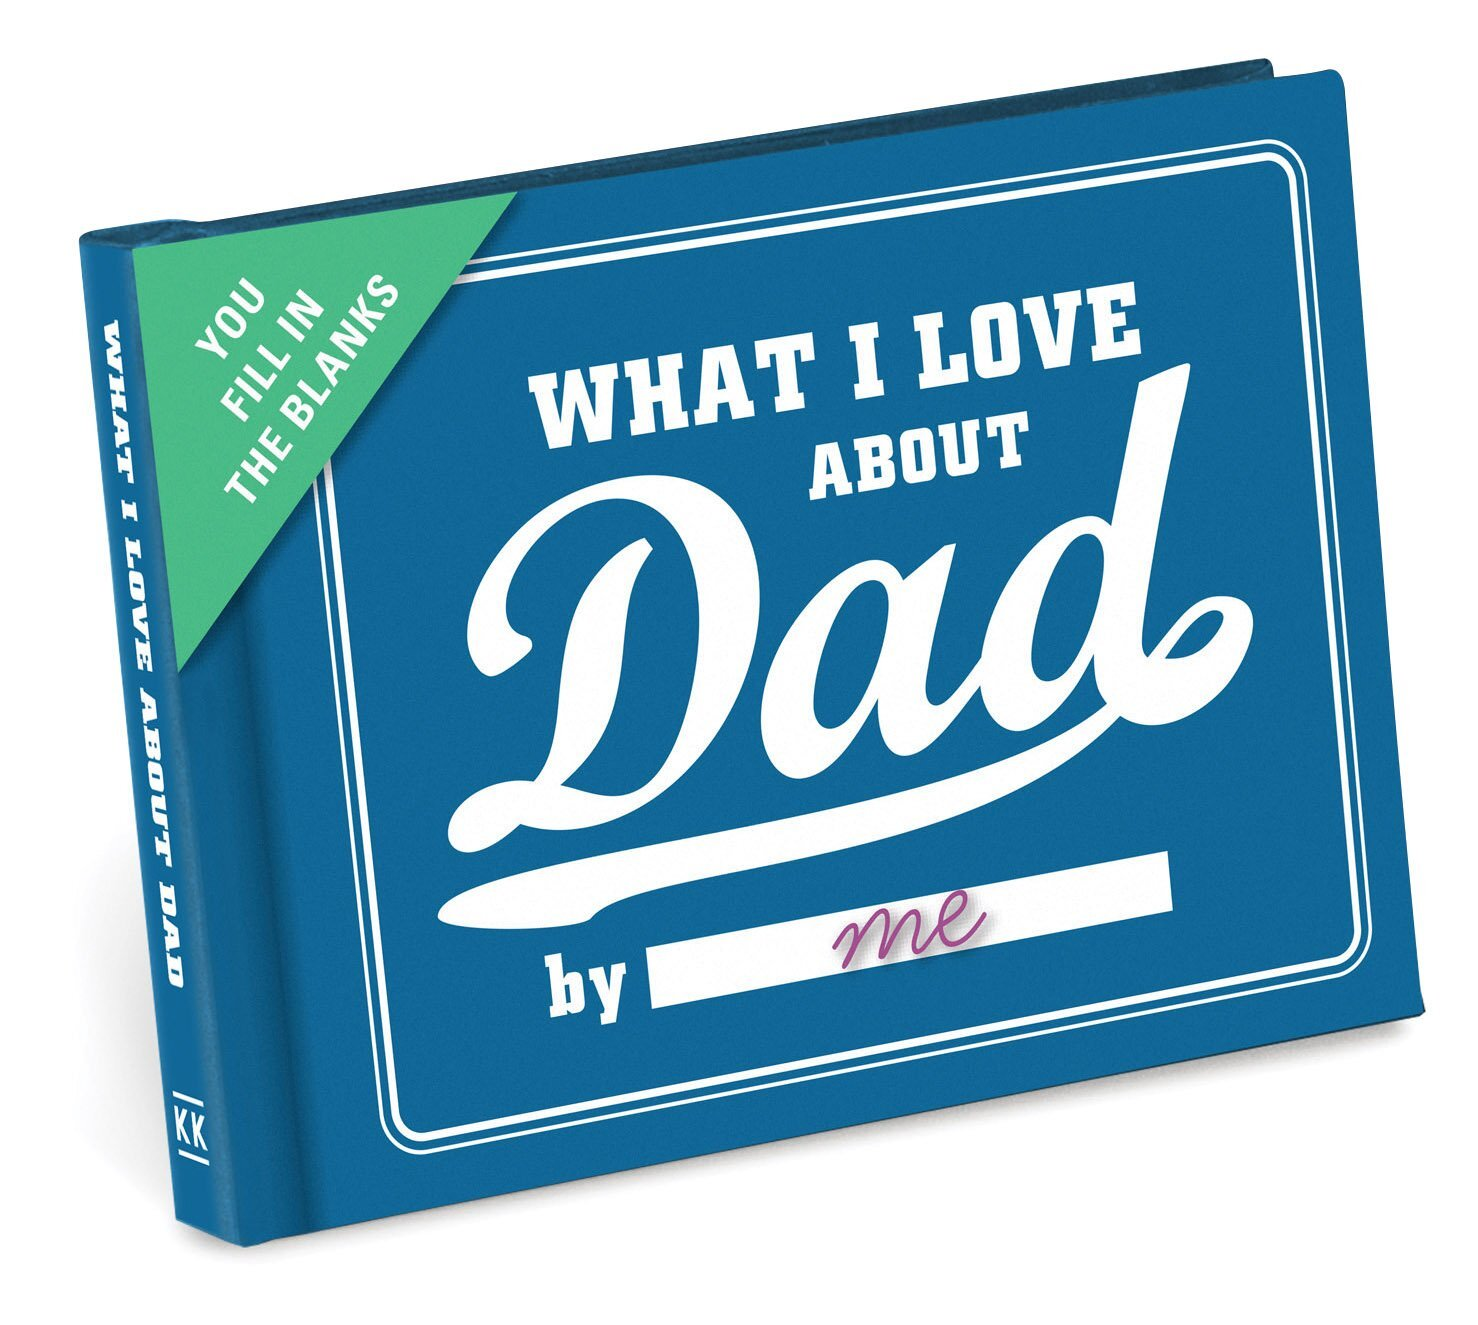 Knock Knock What I Love About Dad Fill In The Love Book Fill-In-The-Blank Journal